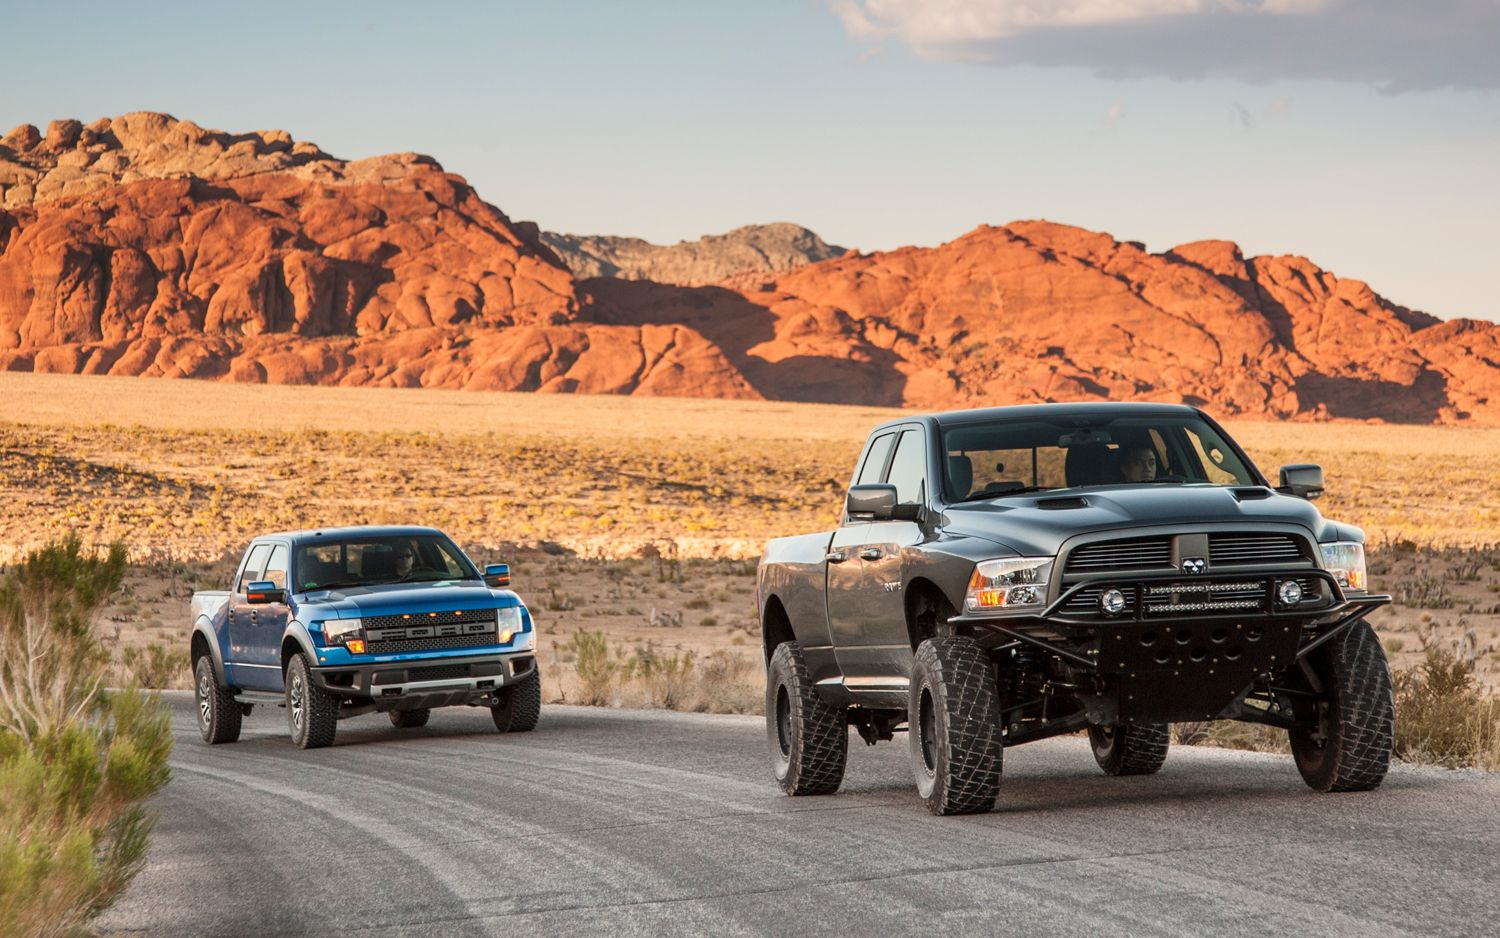 Read All About The 2017 Ford Raptor Vs Ram Runner Comparison From Truck And Suv Experts At Trend